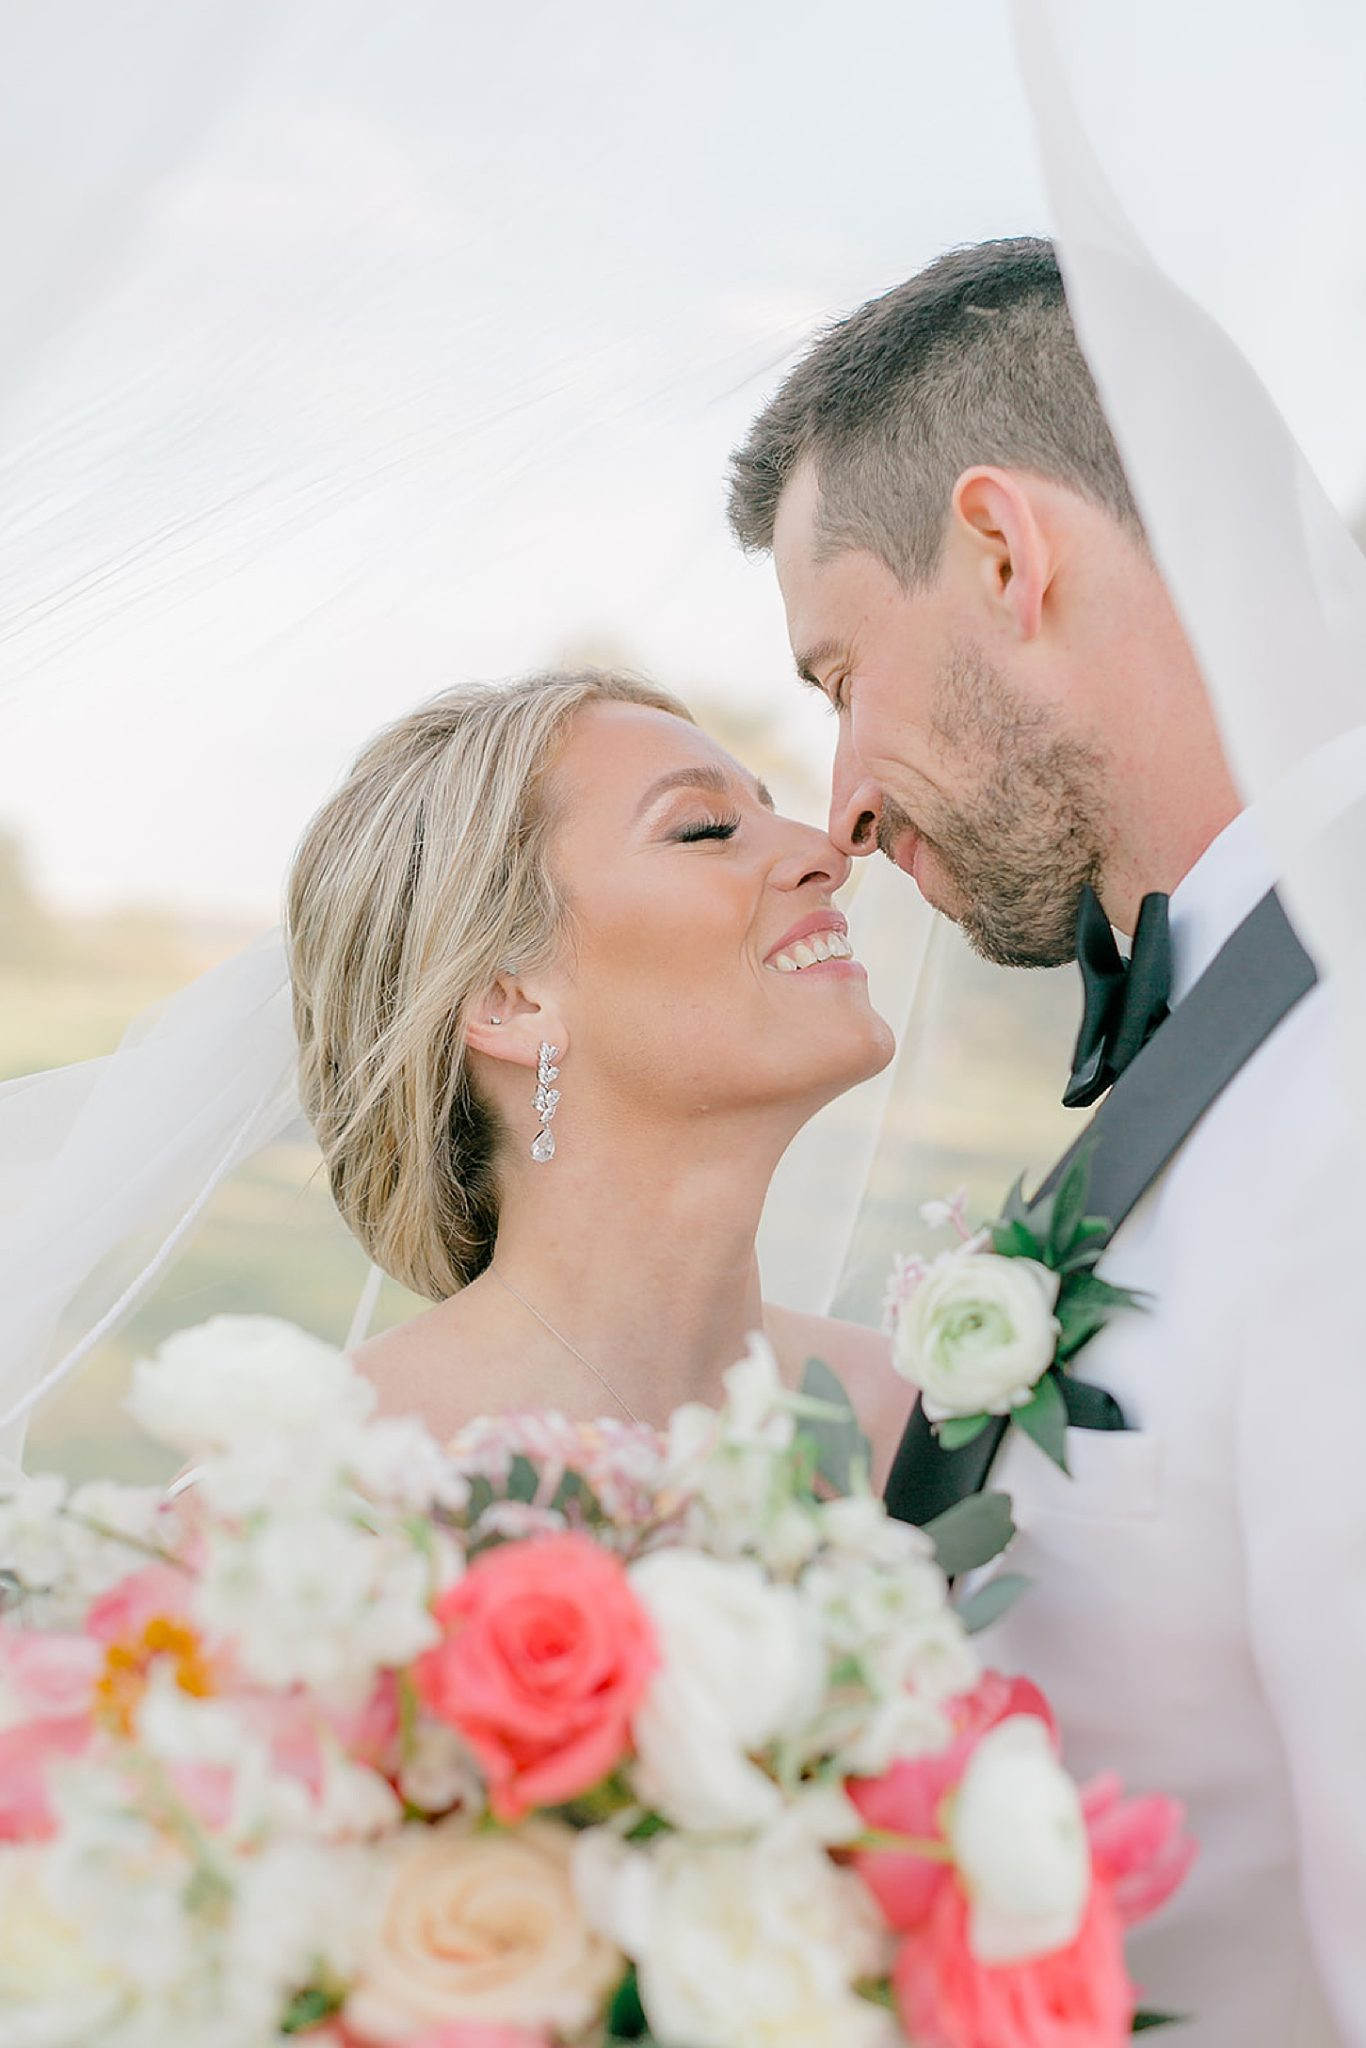 Linwood Country Club Summer Wedding Photography Studio by Magdalena Studios Jenn Kyle 0042 scaled